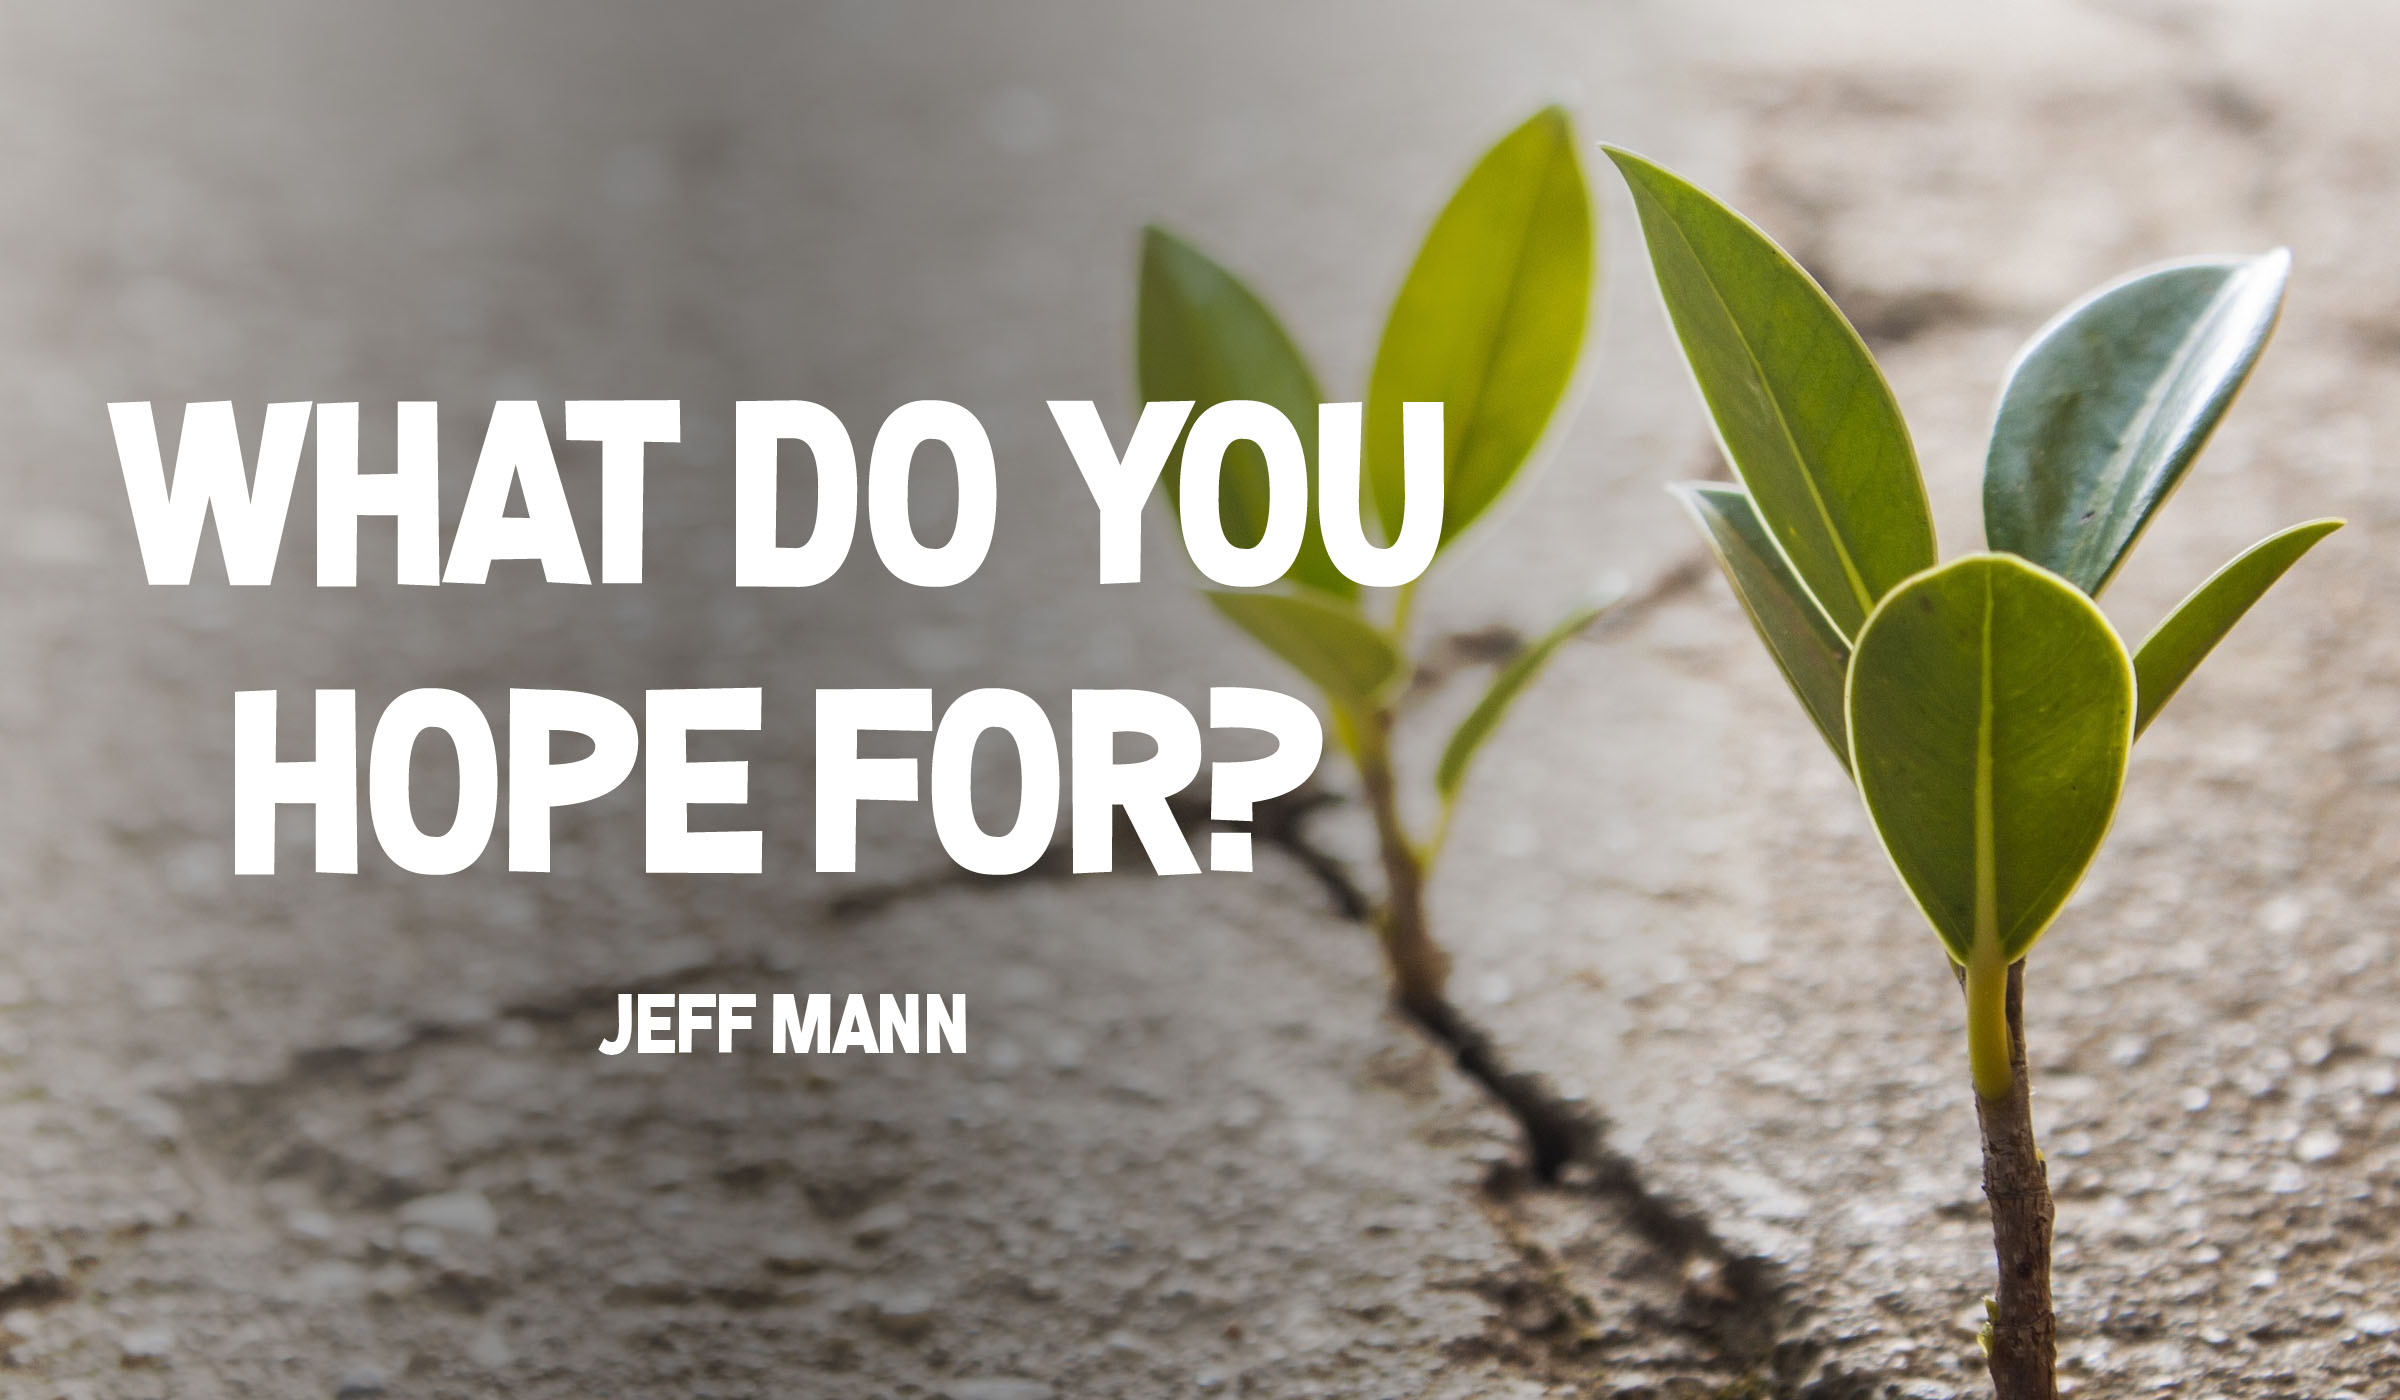 What do you hope for?